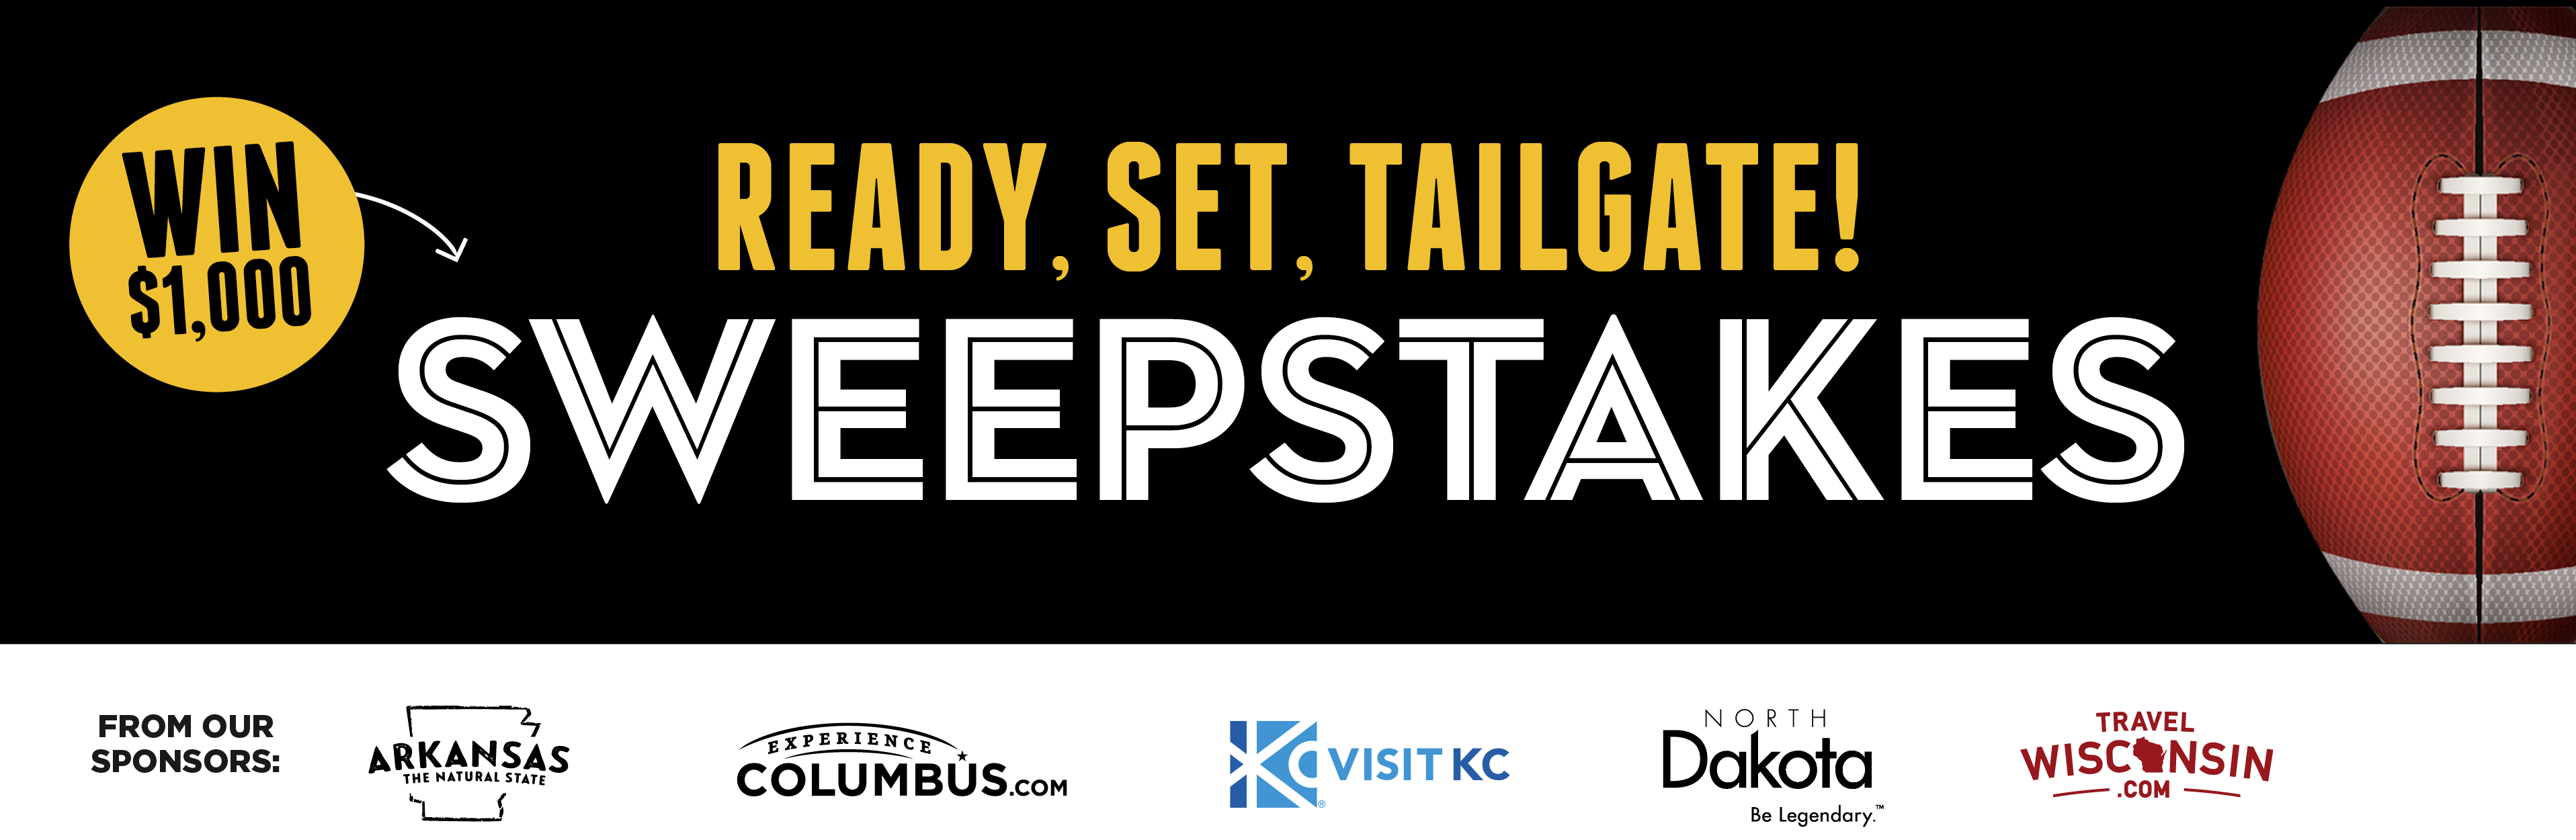 Ready, Set, Tailgate! Sweepstakes | Midwest Living